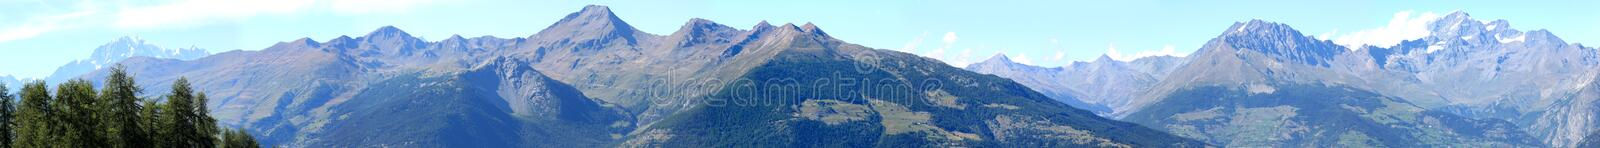 Mountains of National Park Gran Paradiso, Italy. Pila in Aosta Valley is a haven immersed in nature. In every direction you can look out over breathtaking views royalty free stock image